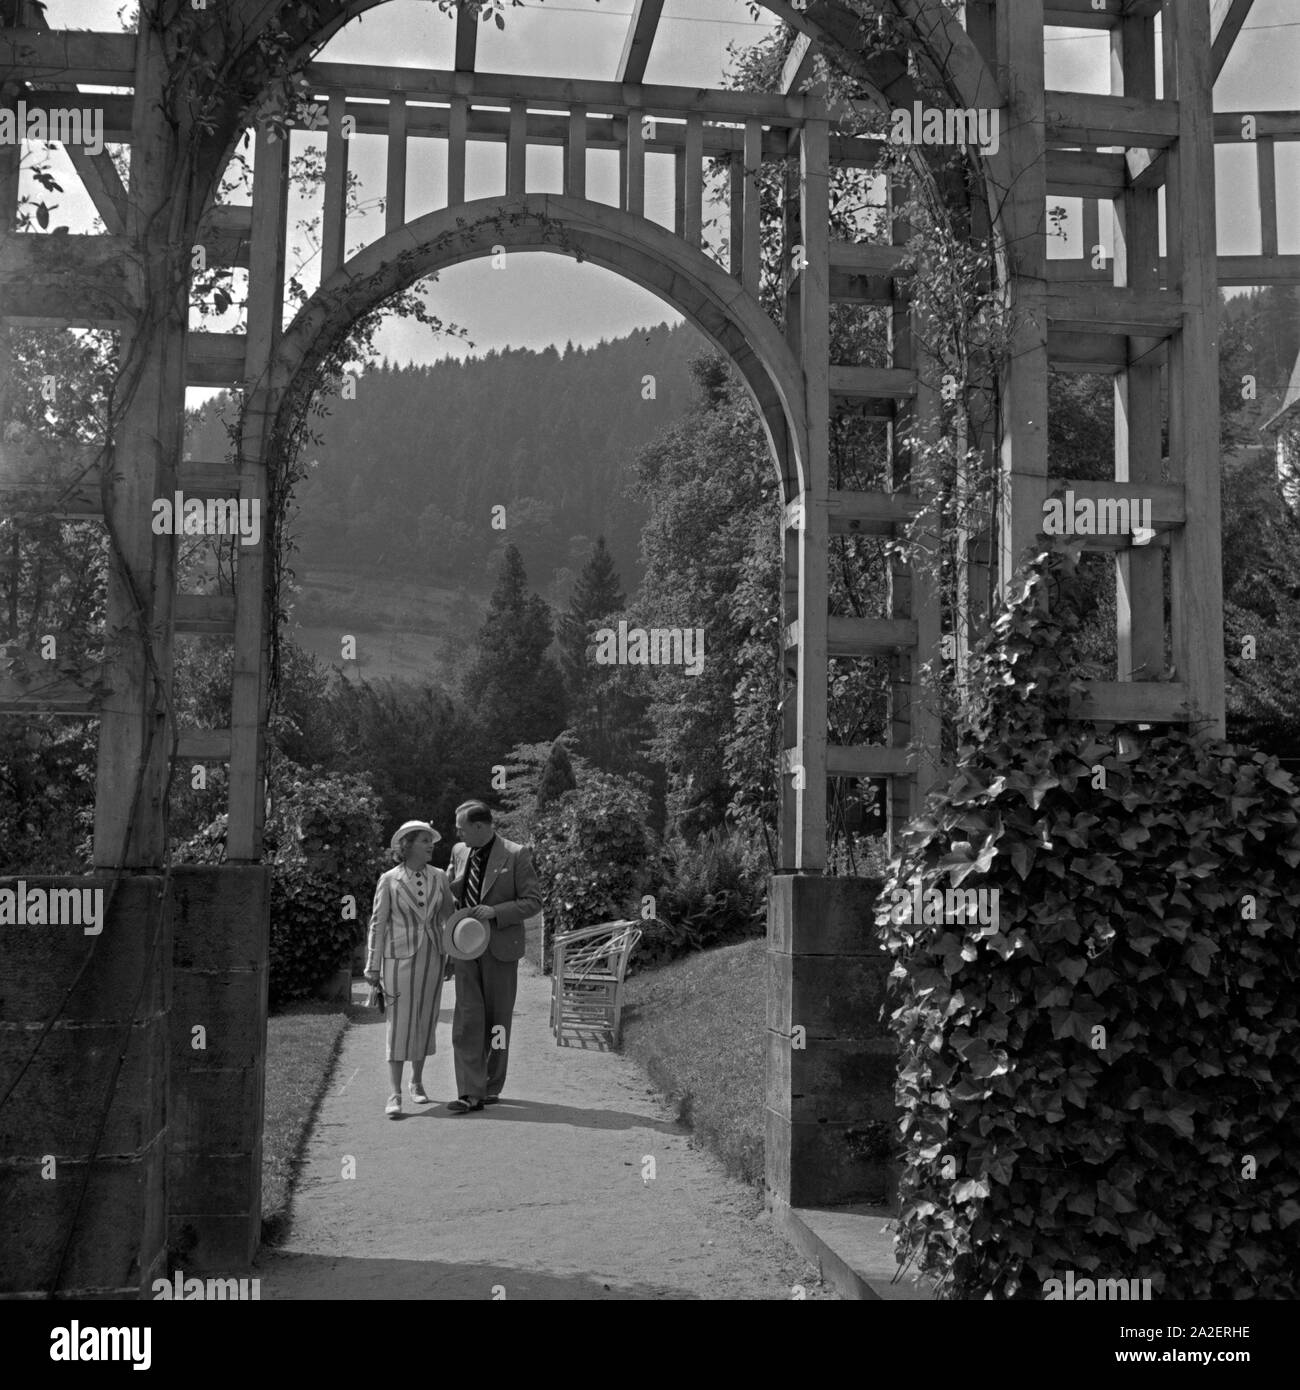 Gartenpavillon Nostalgie Woman Promenading Photos Woman Promenading Images Alamy